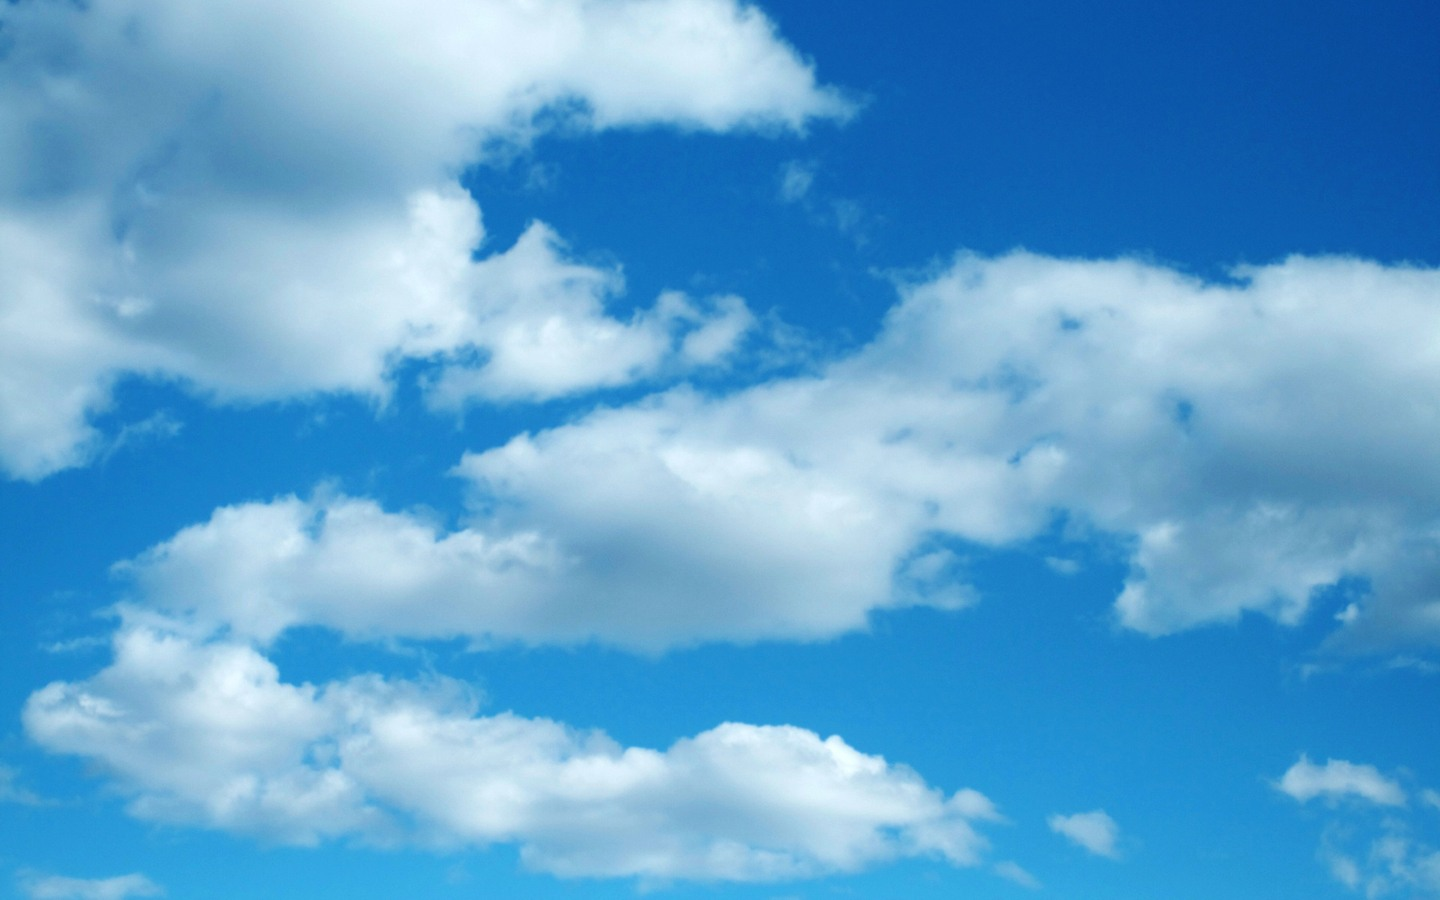 Sky Clouds Wallpapers Summer Blue Sky Clouds 1440x900